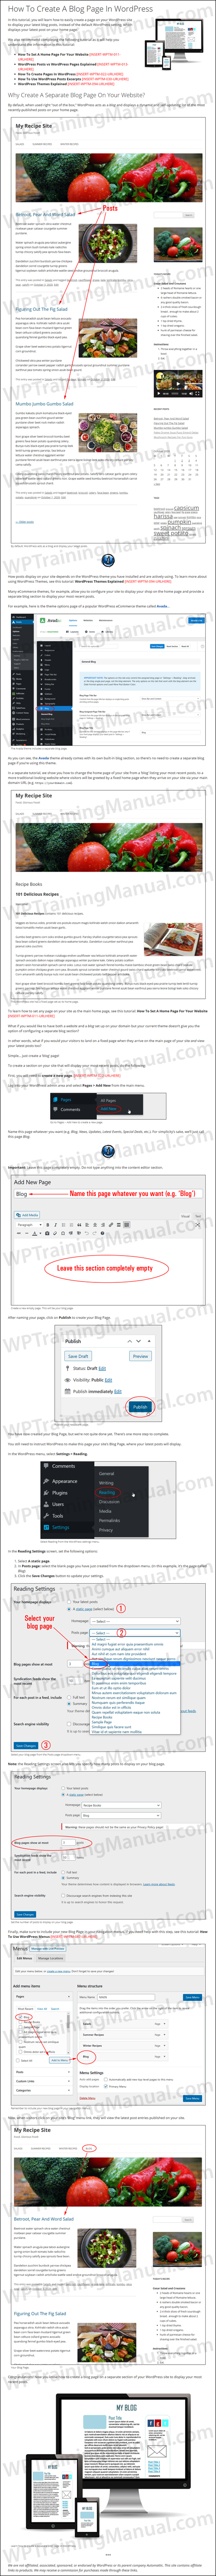 White Label Tutorial: How To Add Blog Page To WordPress - WPTrainingManual.com